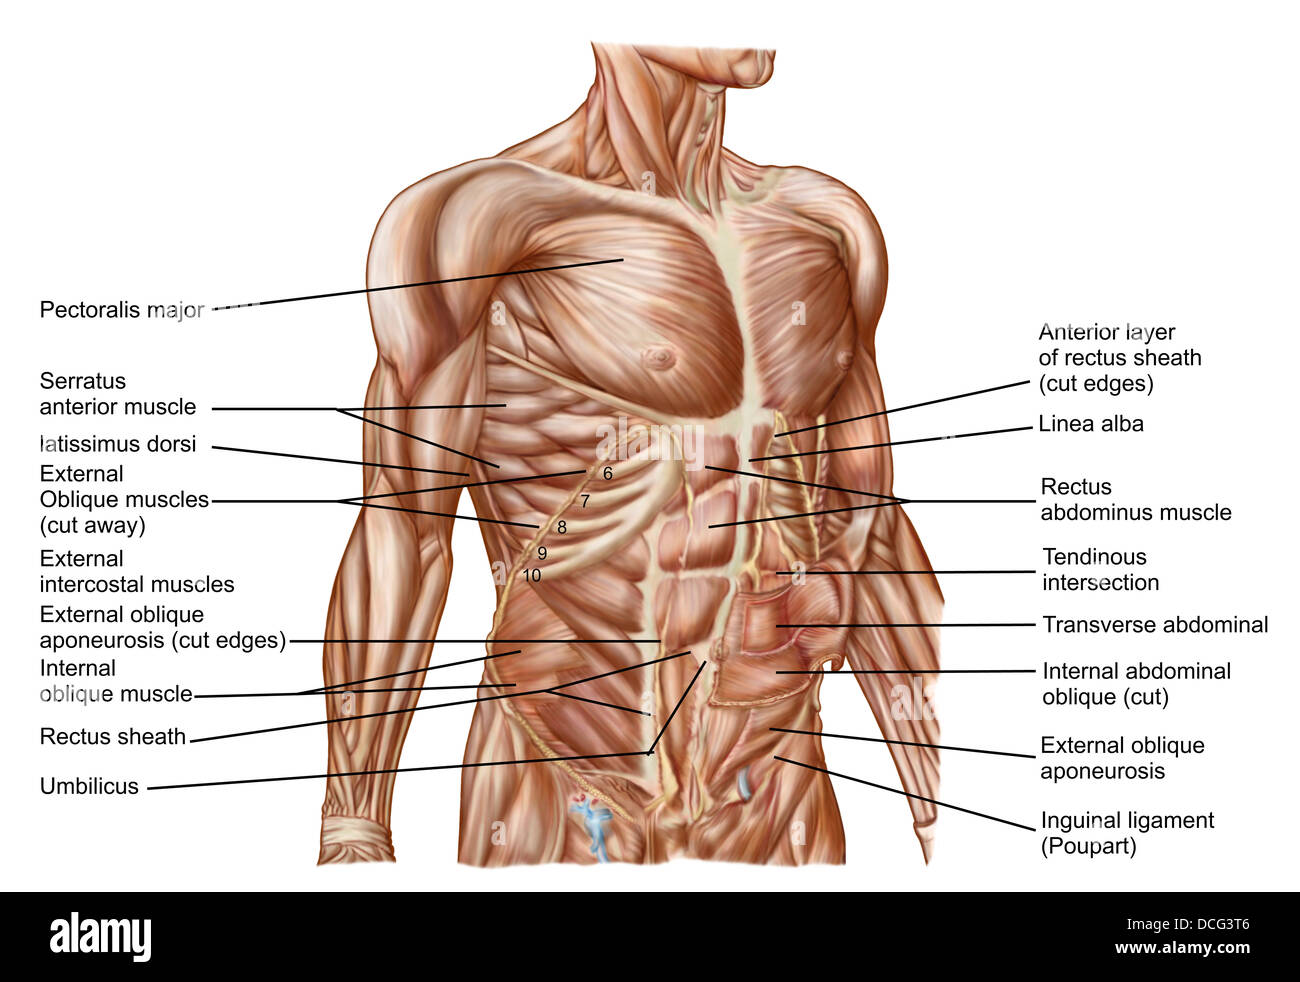 hight resolution of anatomy of human abdominal muscles stock image